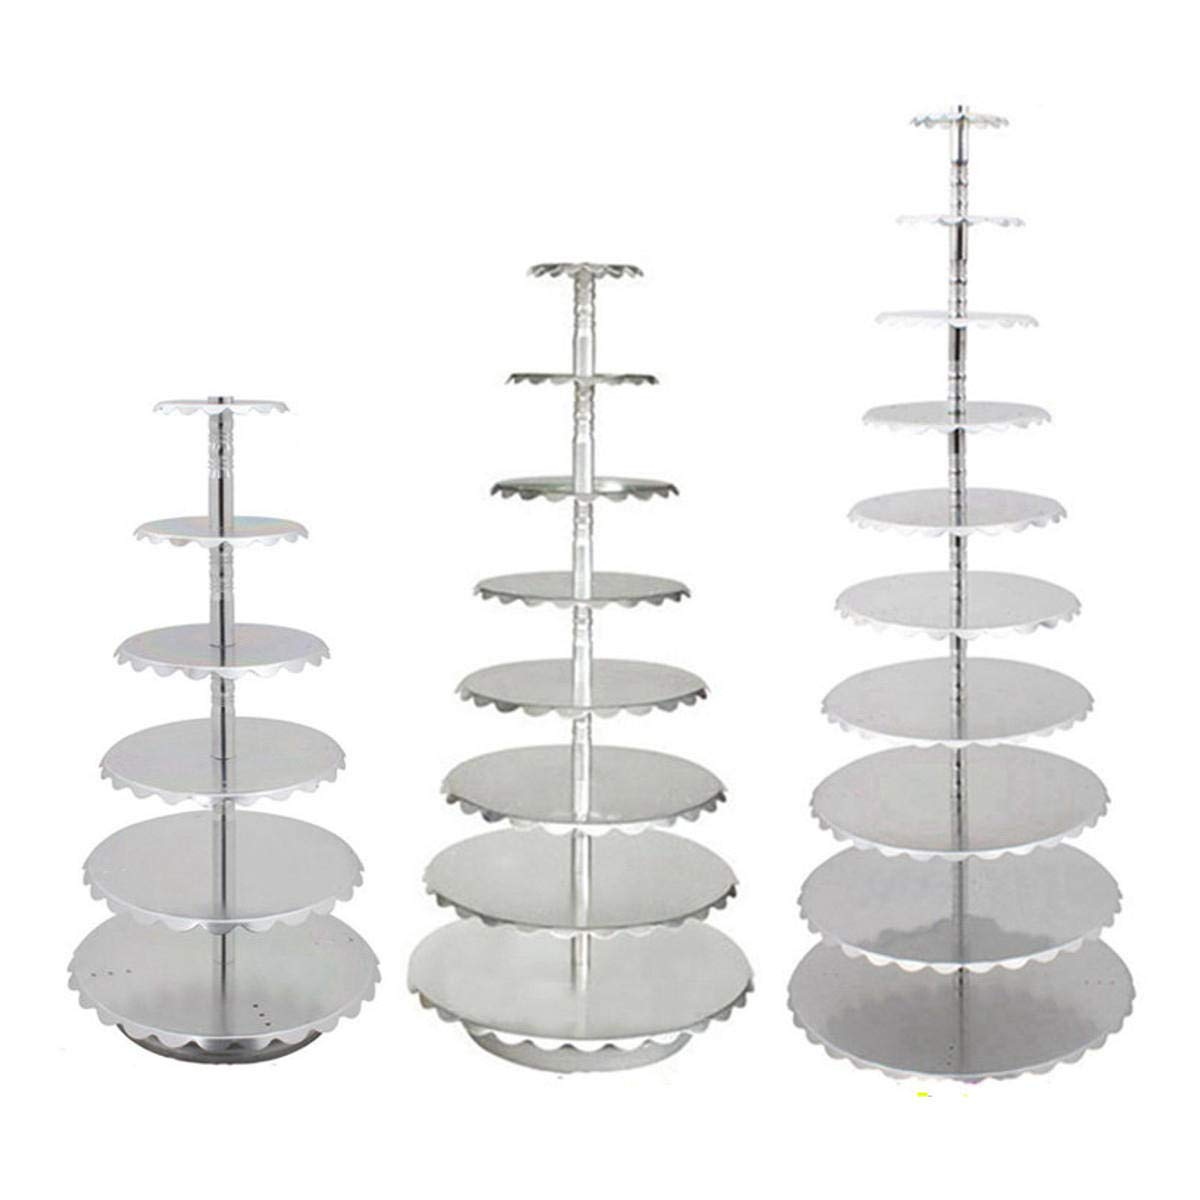 Fragil Tox Dessert Display Tower 6/8 / 10 Tier met097;l Cake Holder Cupcake Stand Birthday Wedding Tower Display Decorations 2 Multi 8 Medium